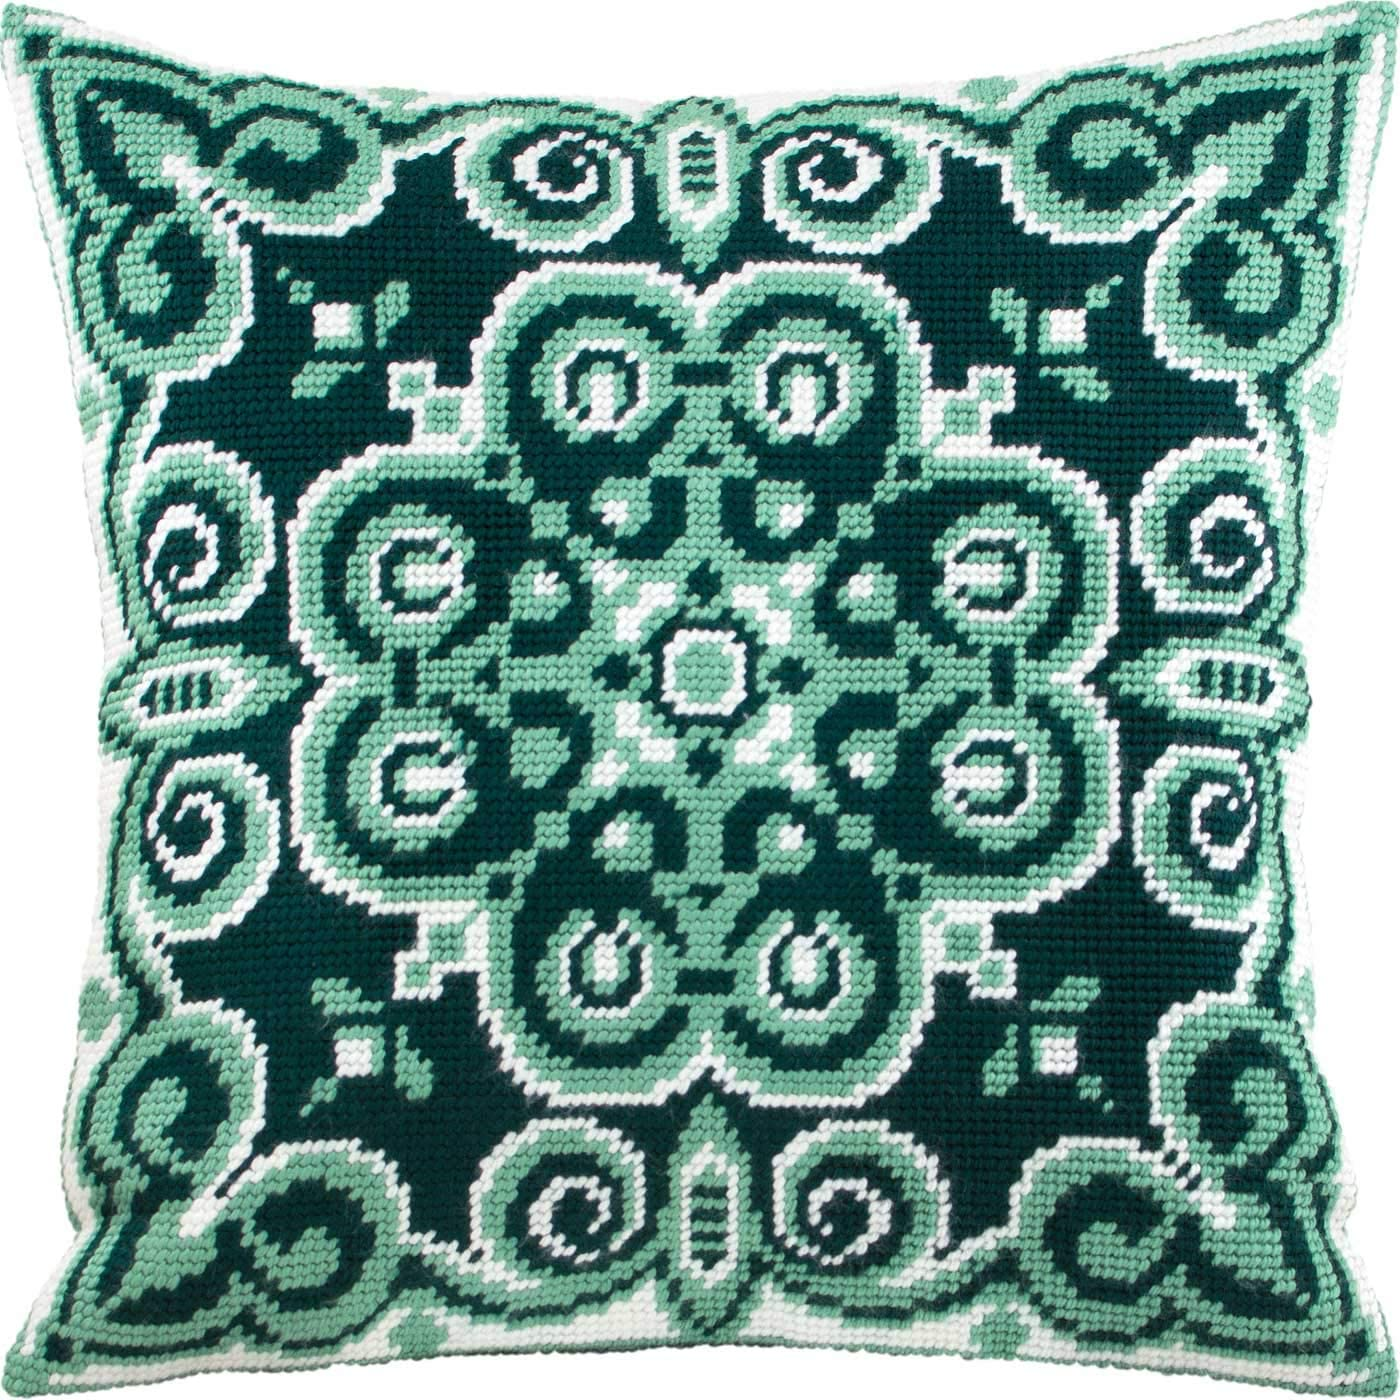 Throw Pillow 16/×16 Inches Needlepoint Kit Baghdad Printed Tapestry Canvas European Quality